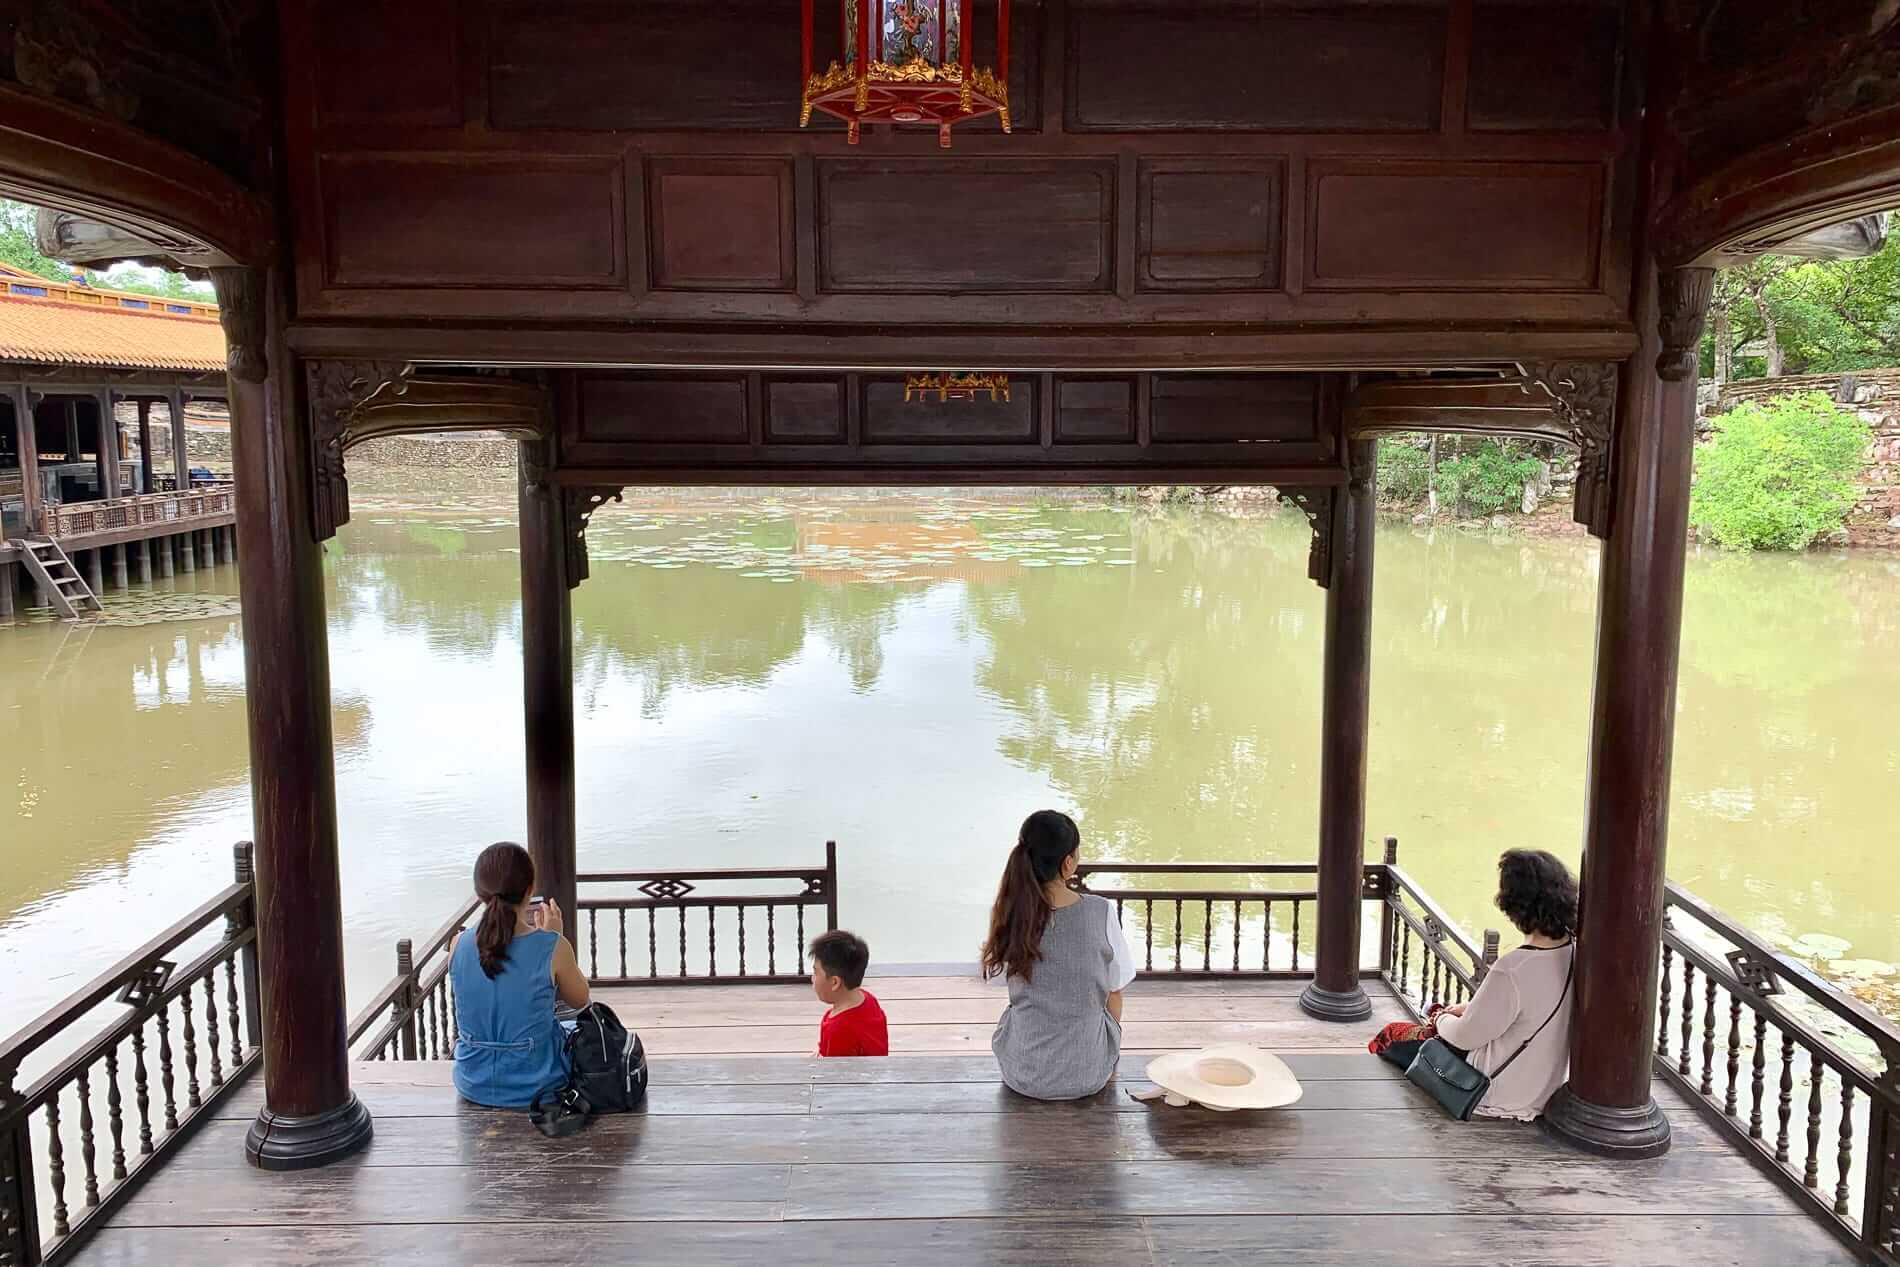 A quiet spot by the lake at Tu Duc Imperial Tomb